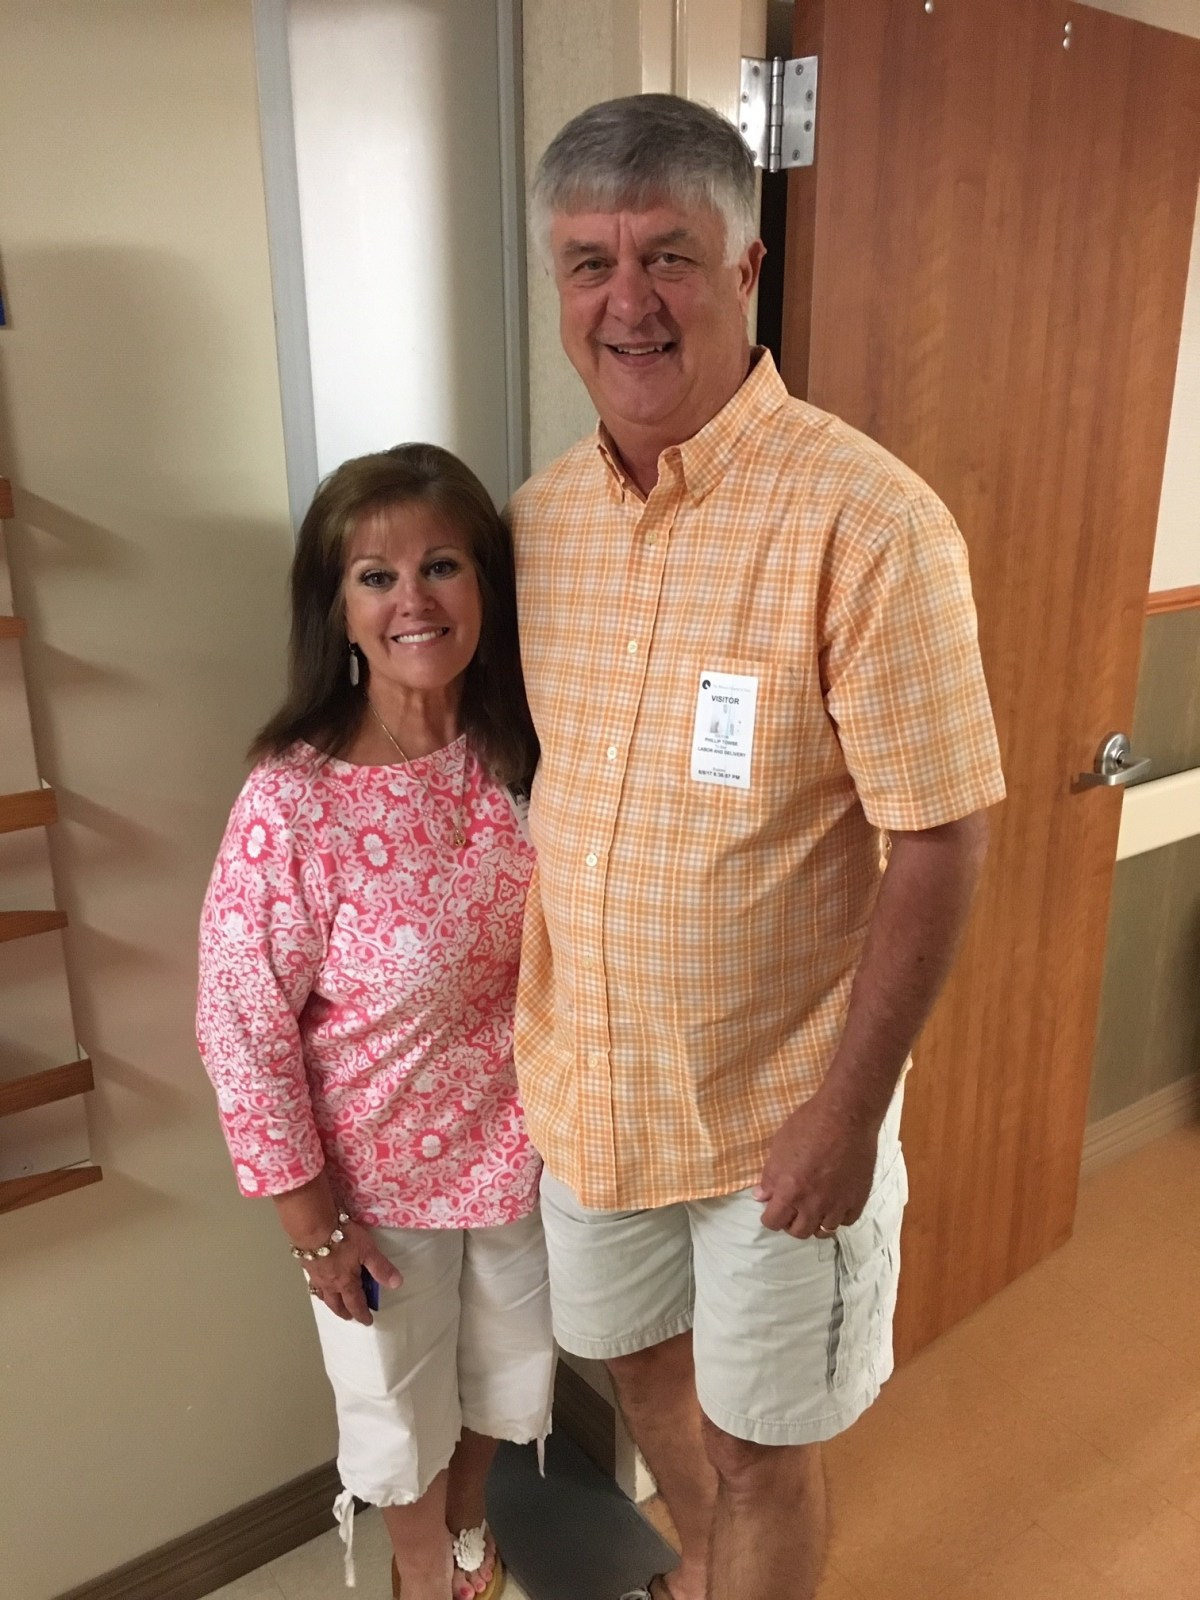 Phil Towse, a COVID-19 patient who received a convalescent plasma transfusion, with his wife, Cathye Jo.